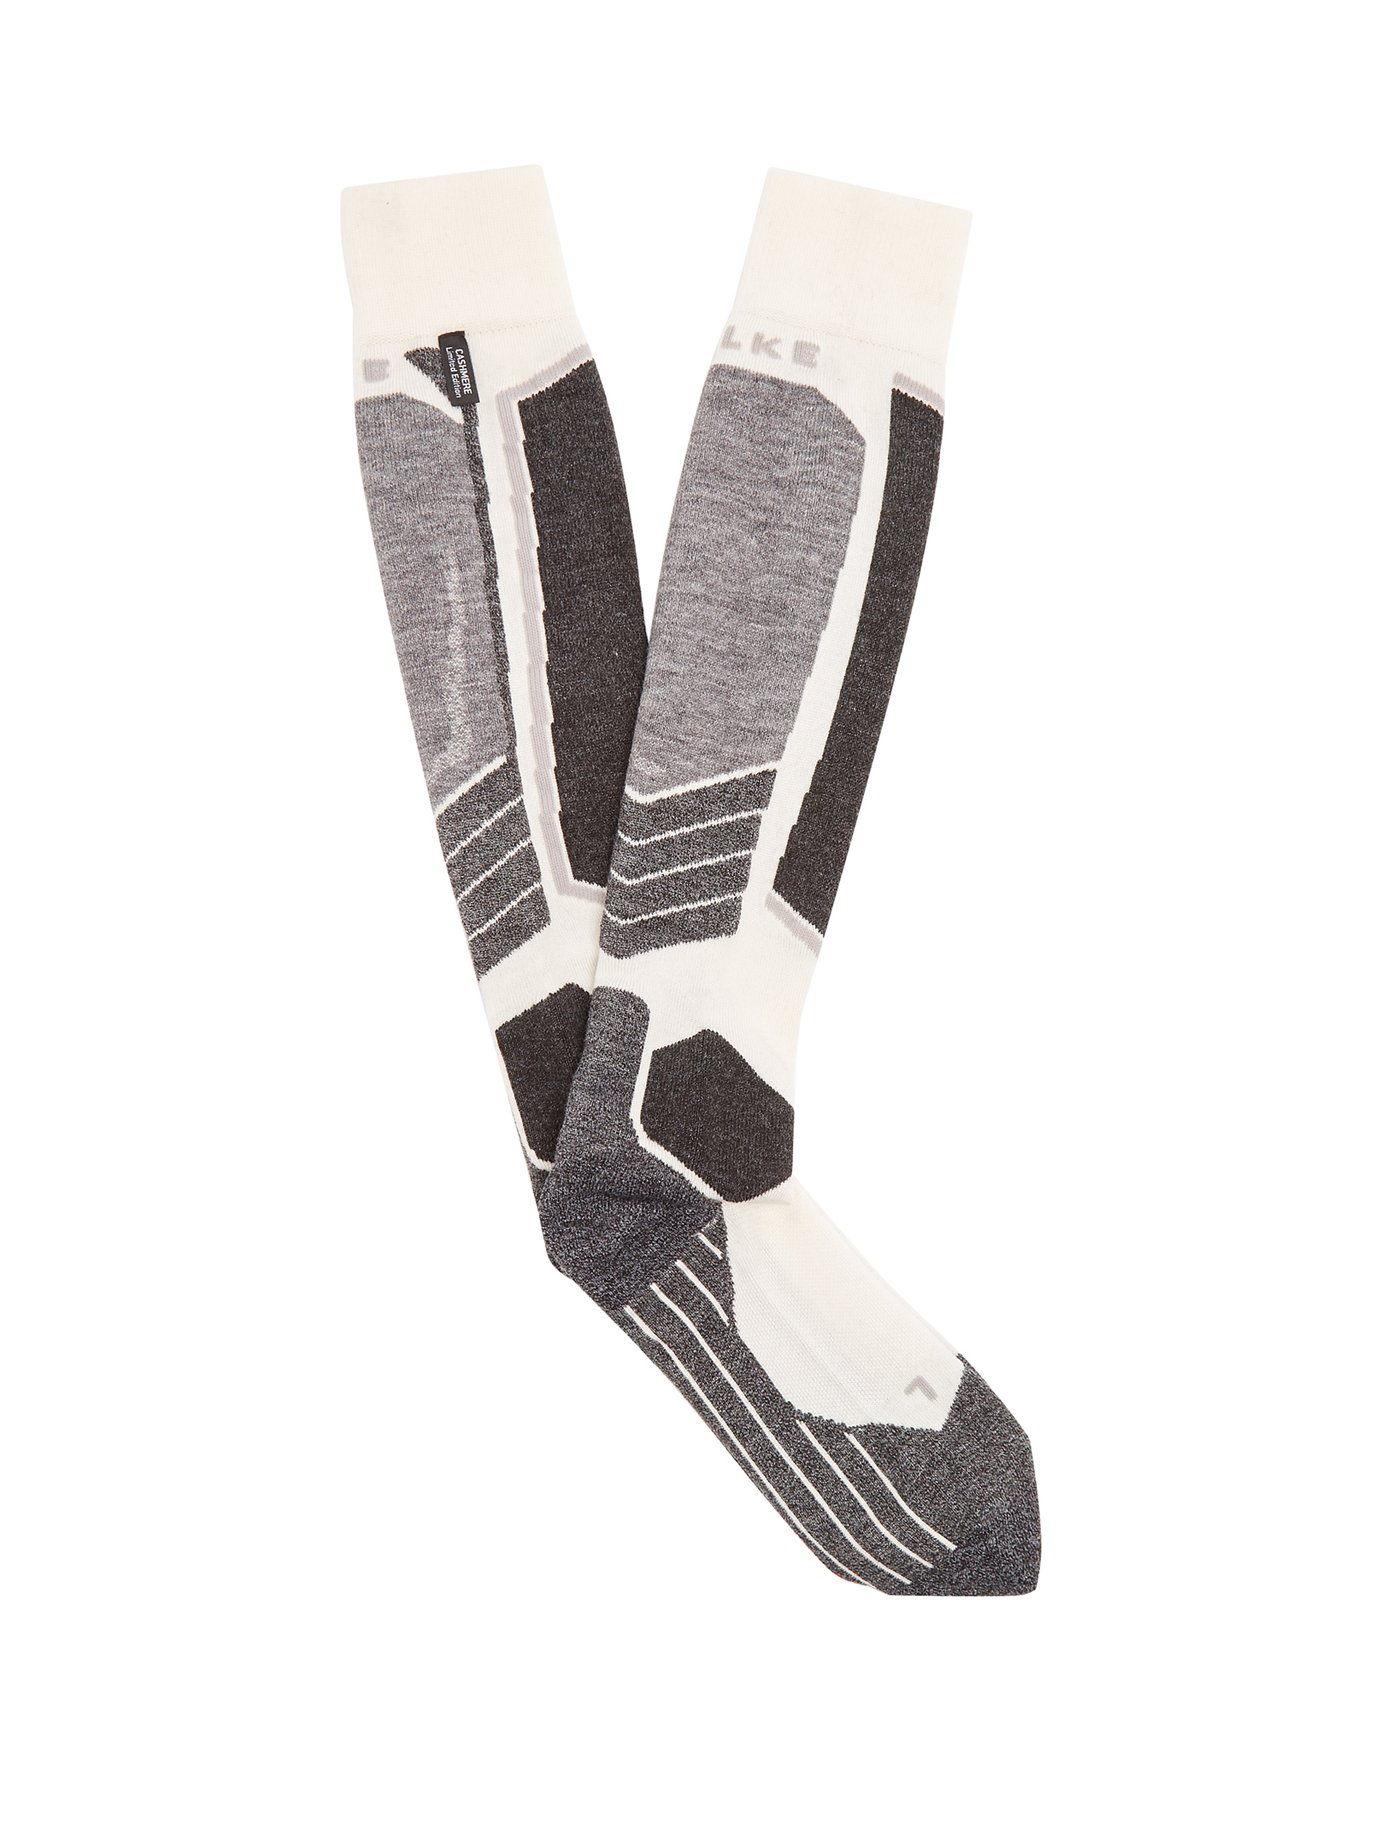 FALKESK2 ski socksWas £89 Now £62 - It is really quite hard to keep the sex factor up while talking about sweat-wicking, and antibacterial qualities, which is why well coordinated,sleek,close-fitting ensembles in timeless palettes are key. These socks, in their muted tones, are hyper-functional and as elegant as ski socks get.